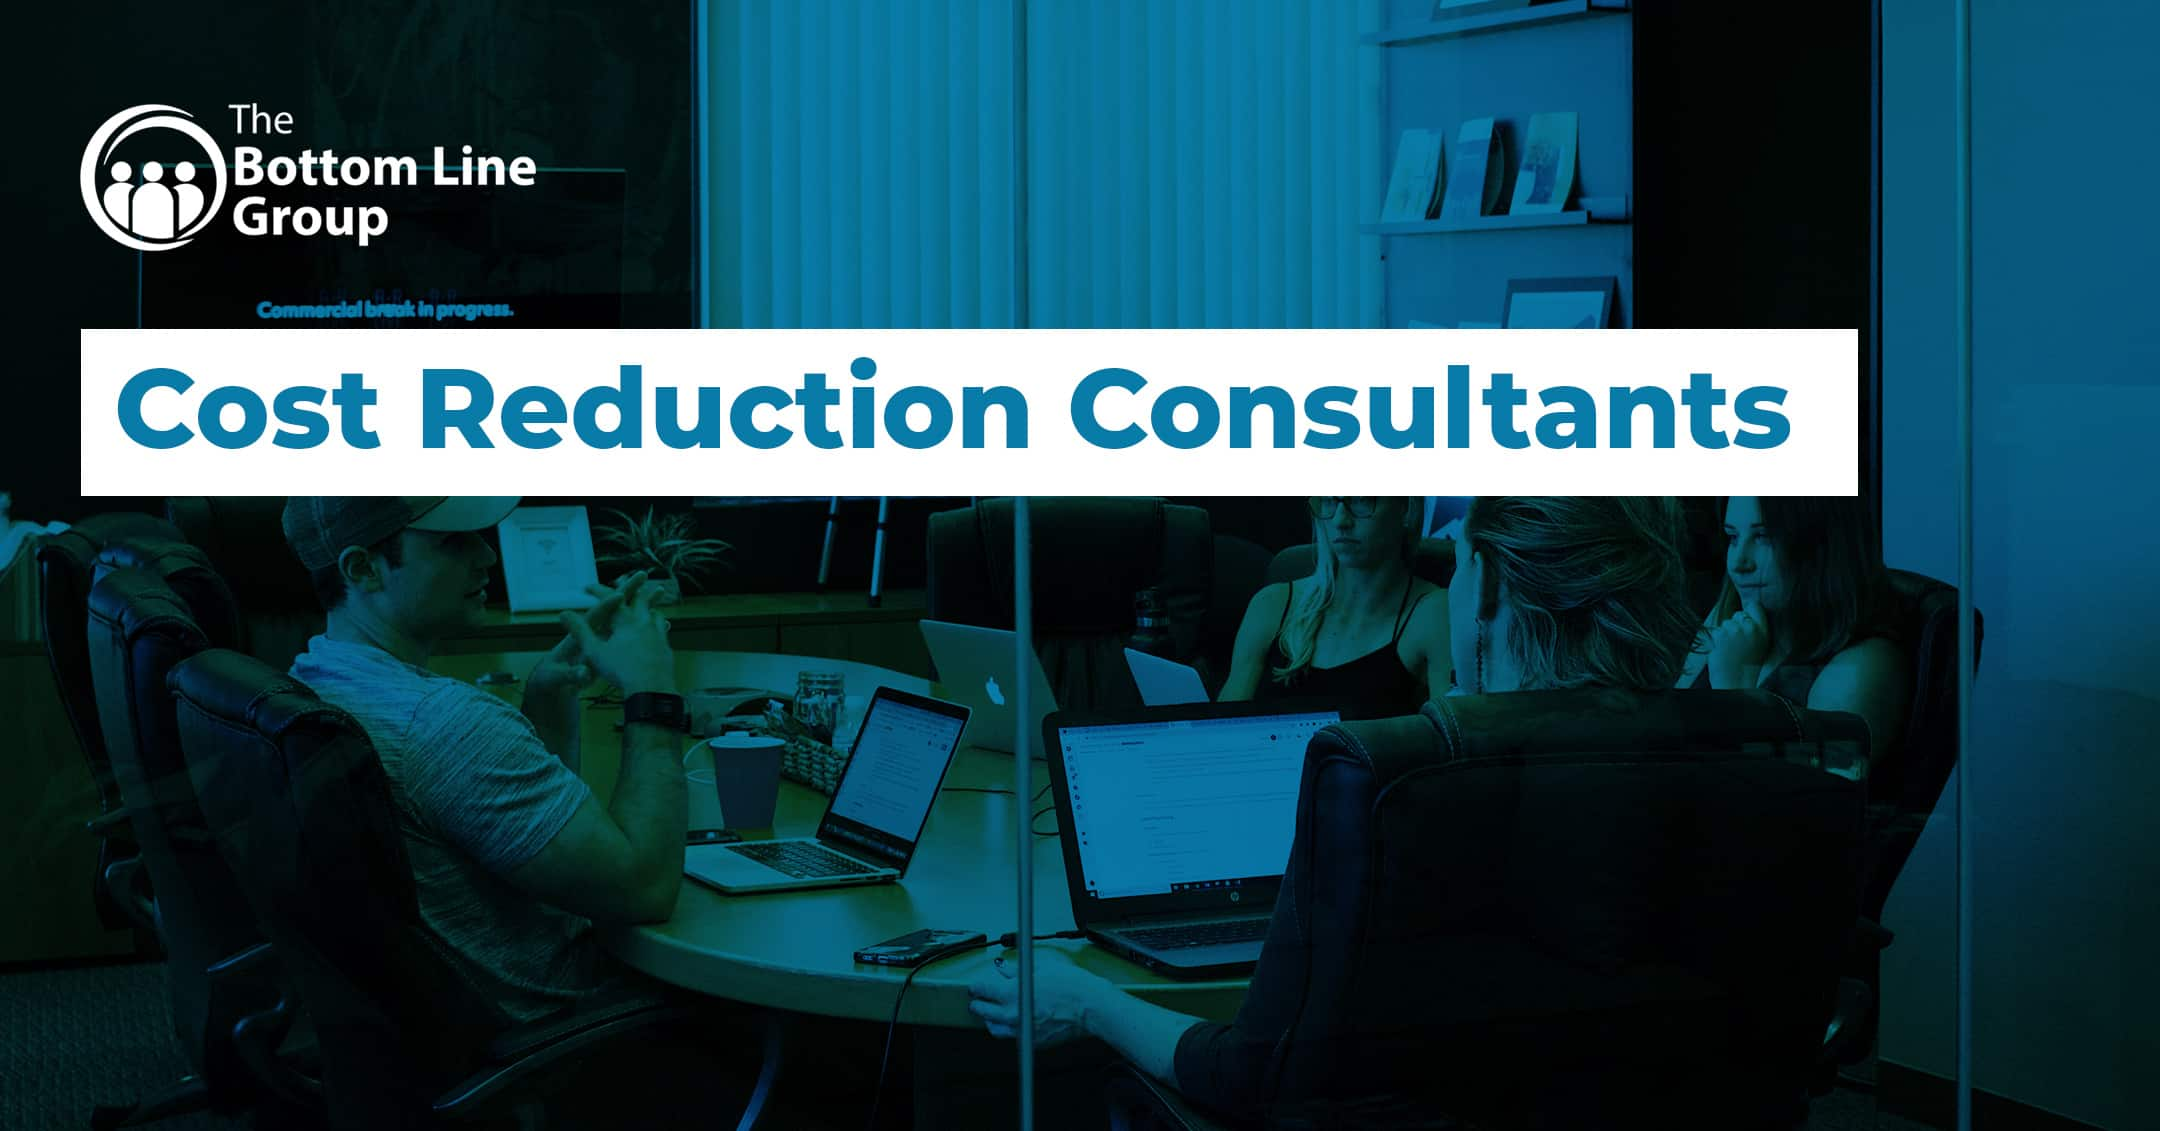 39-(Cost-Reduction-Consultants)1